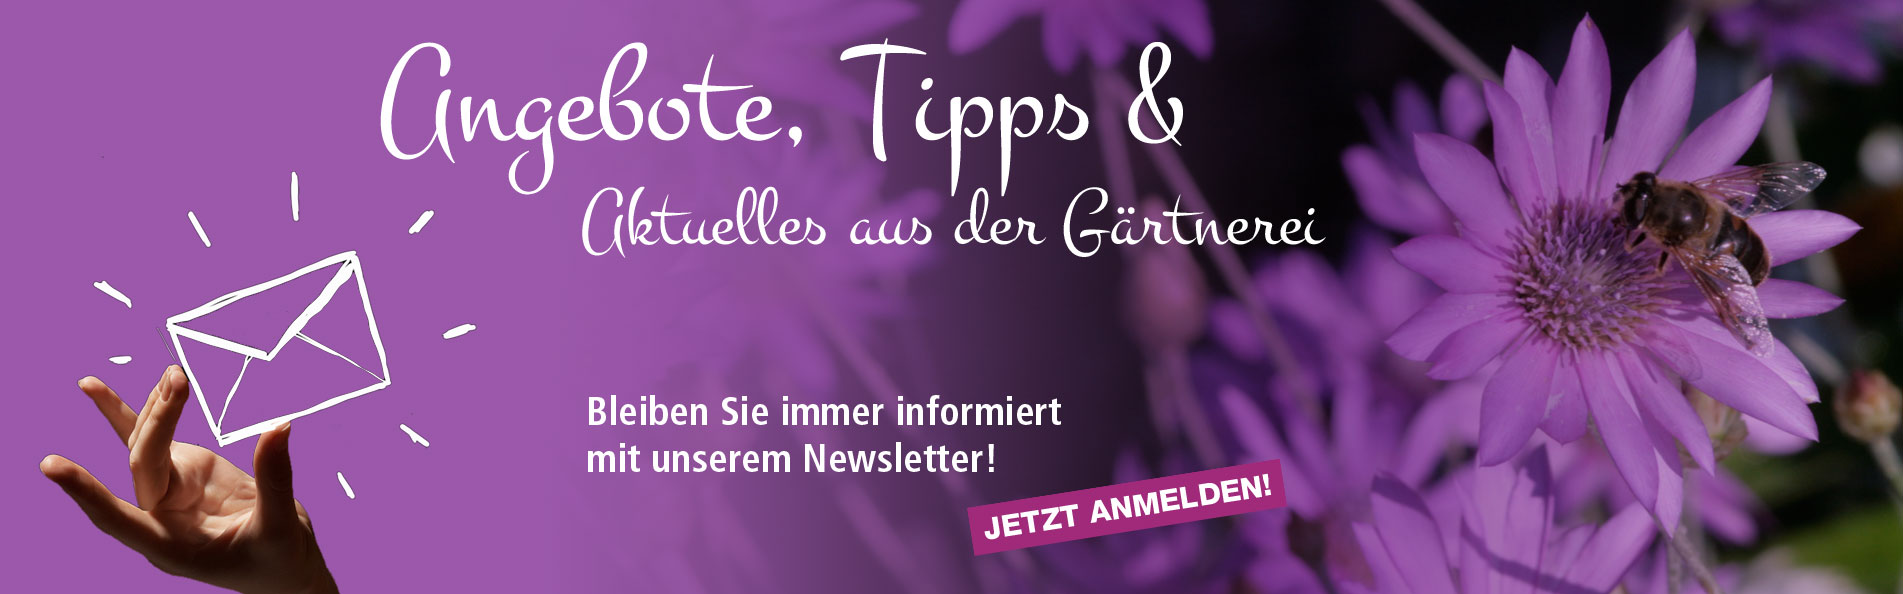 Slider_Newsletter_1